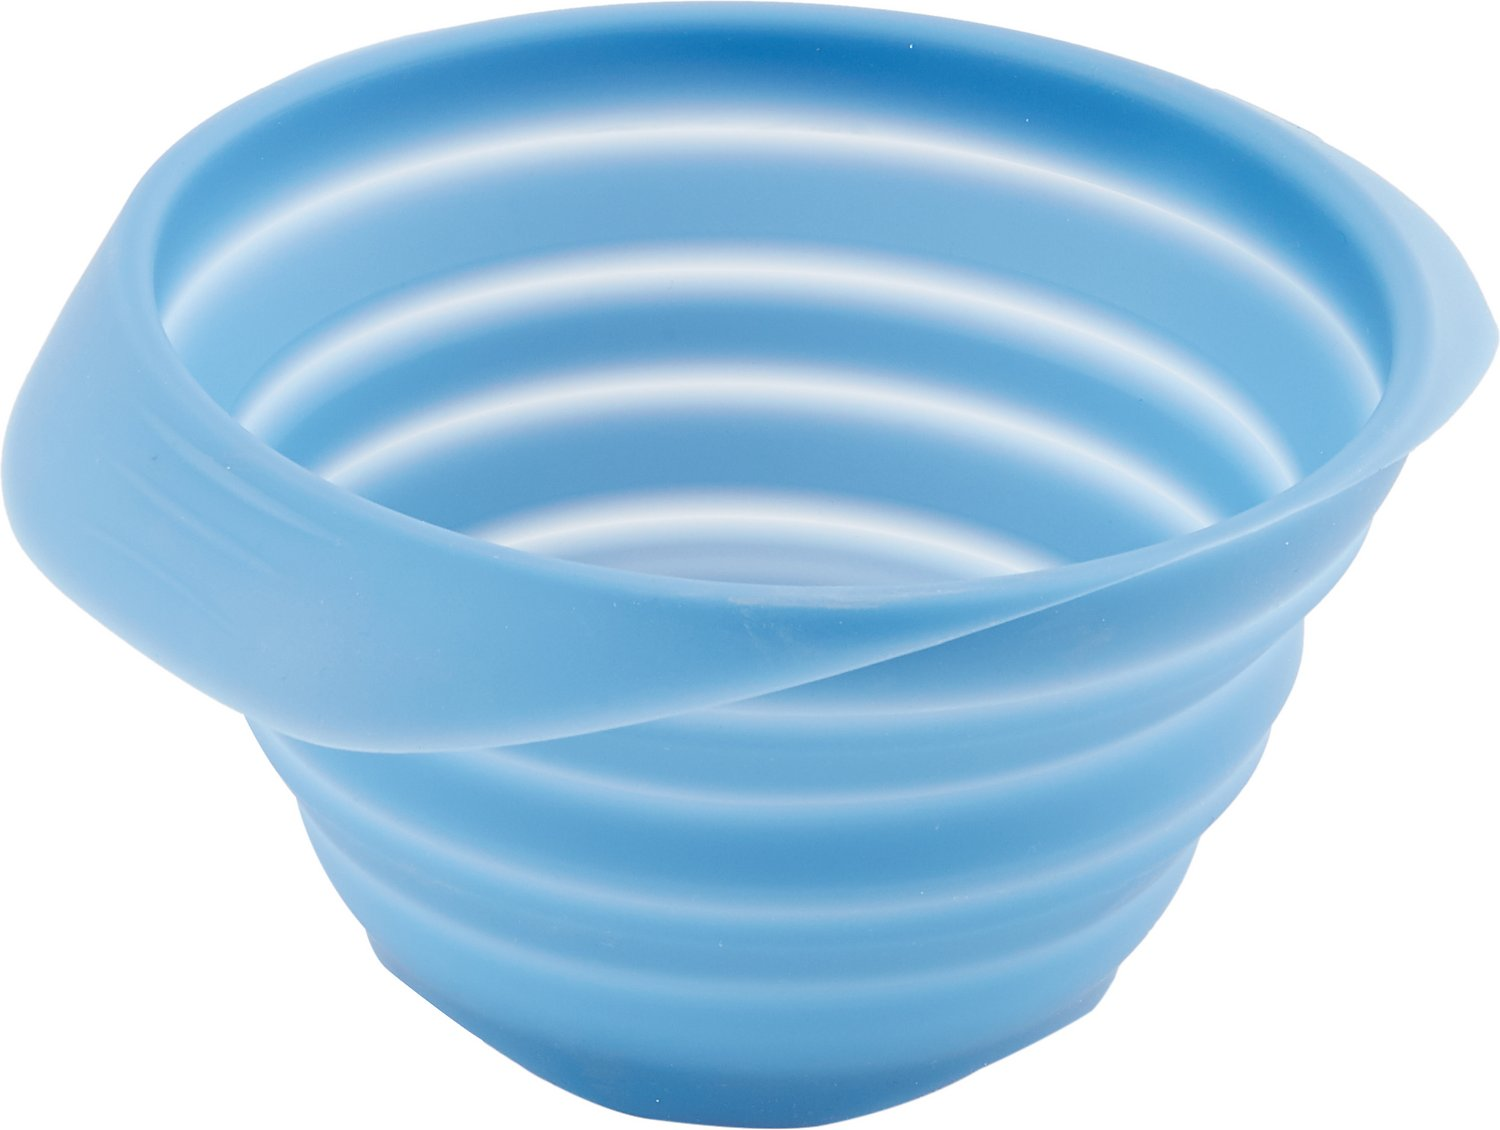 Kurgo Collaps-A-Bowl Pet Bowl, Blue